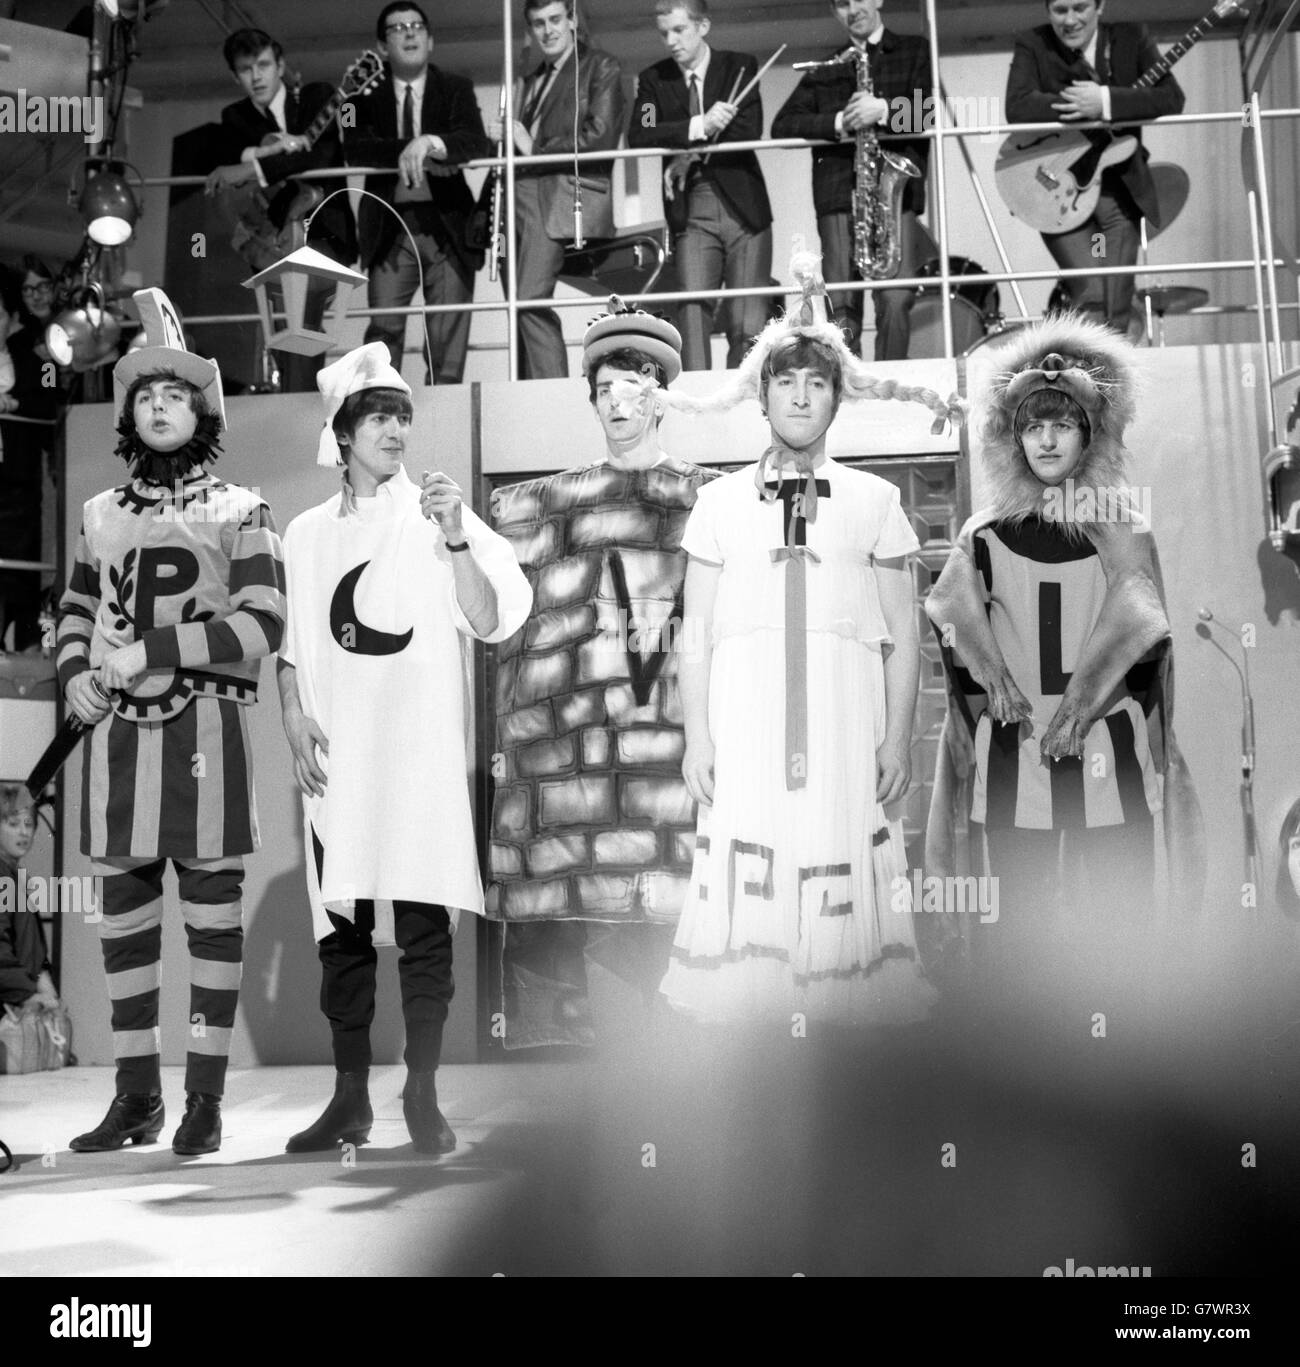 Music - The Beatles - Around the Beatles Television Show - Wembley Studio, London - Stock Image